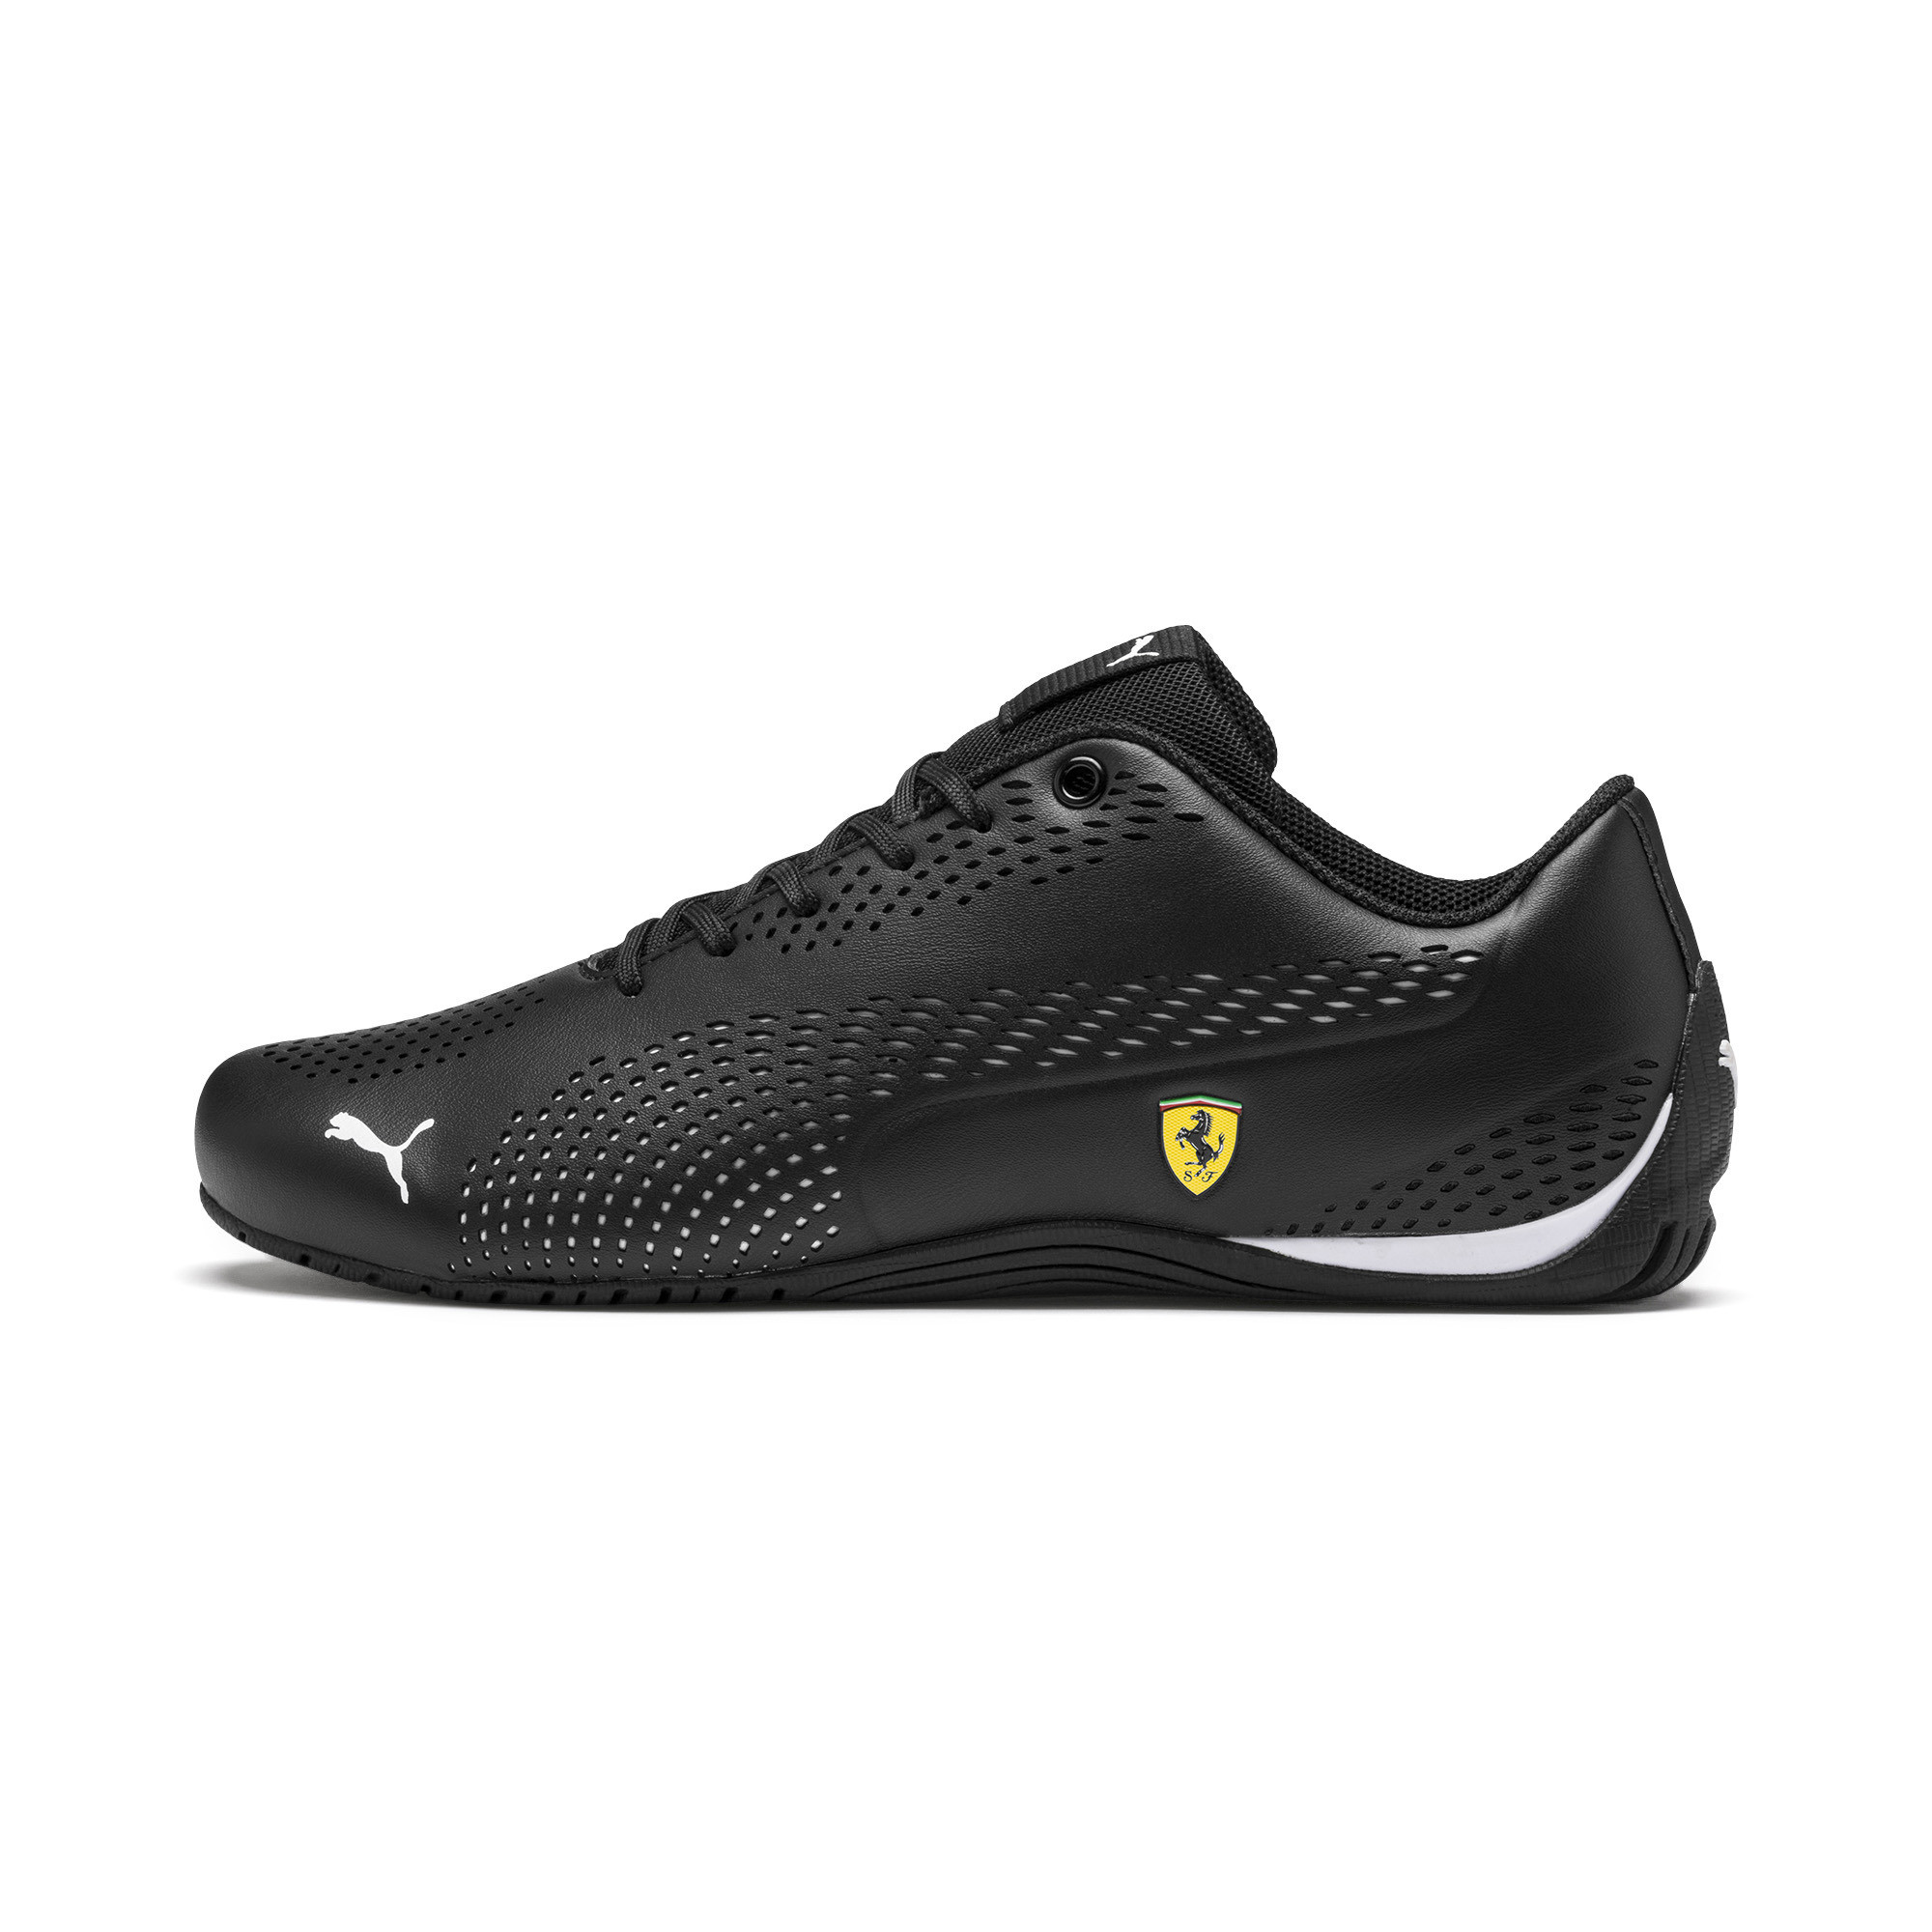 PUMA-Men-039-s-Scuderia-Ferrari-Drift-Cat-5-Ultra-II-Shoes thumbnail 11